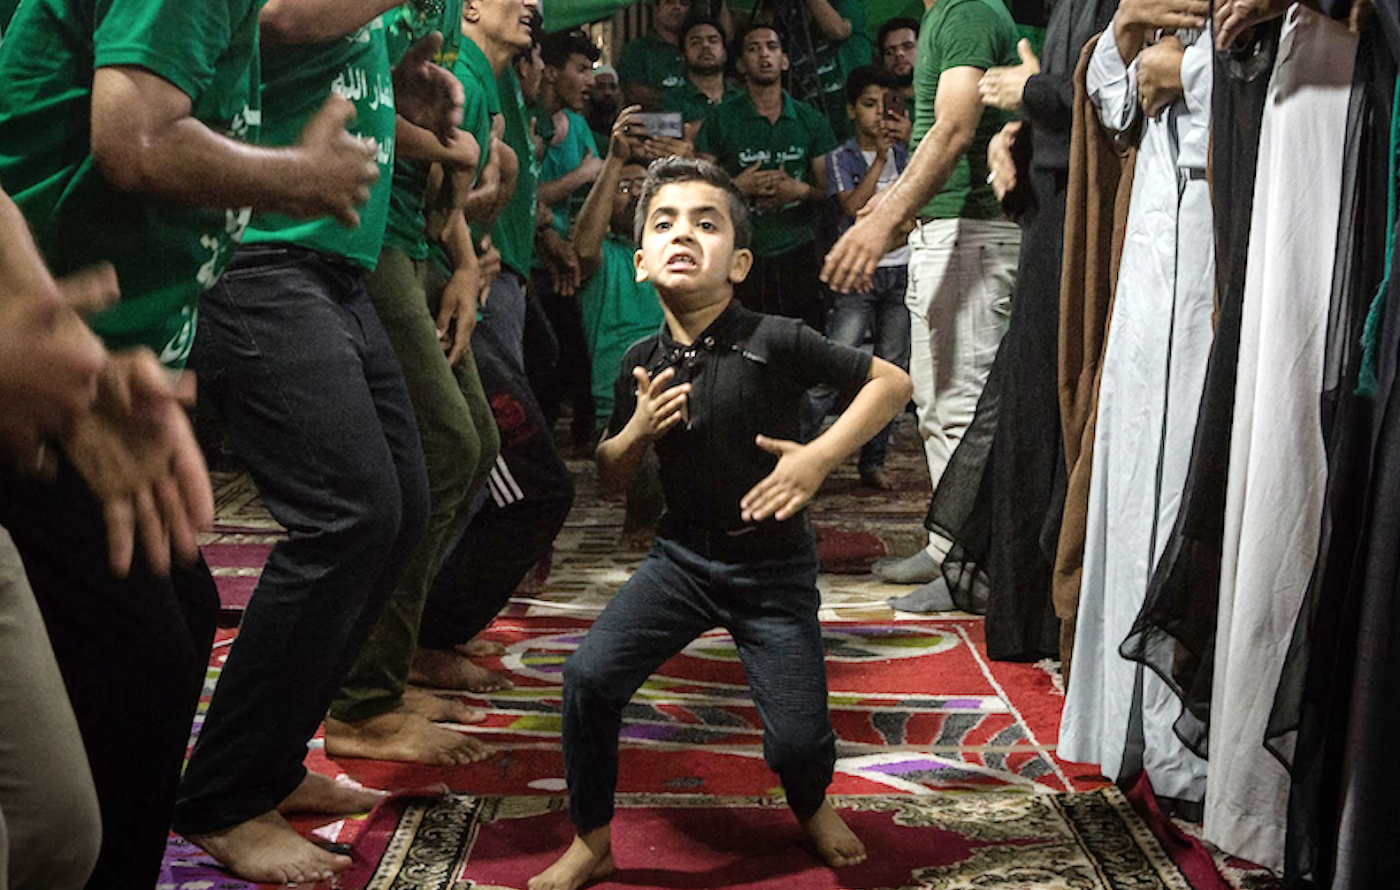 Baghdad beats: Meet the Shia rappers raising the roof